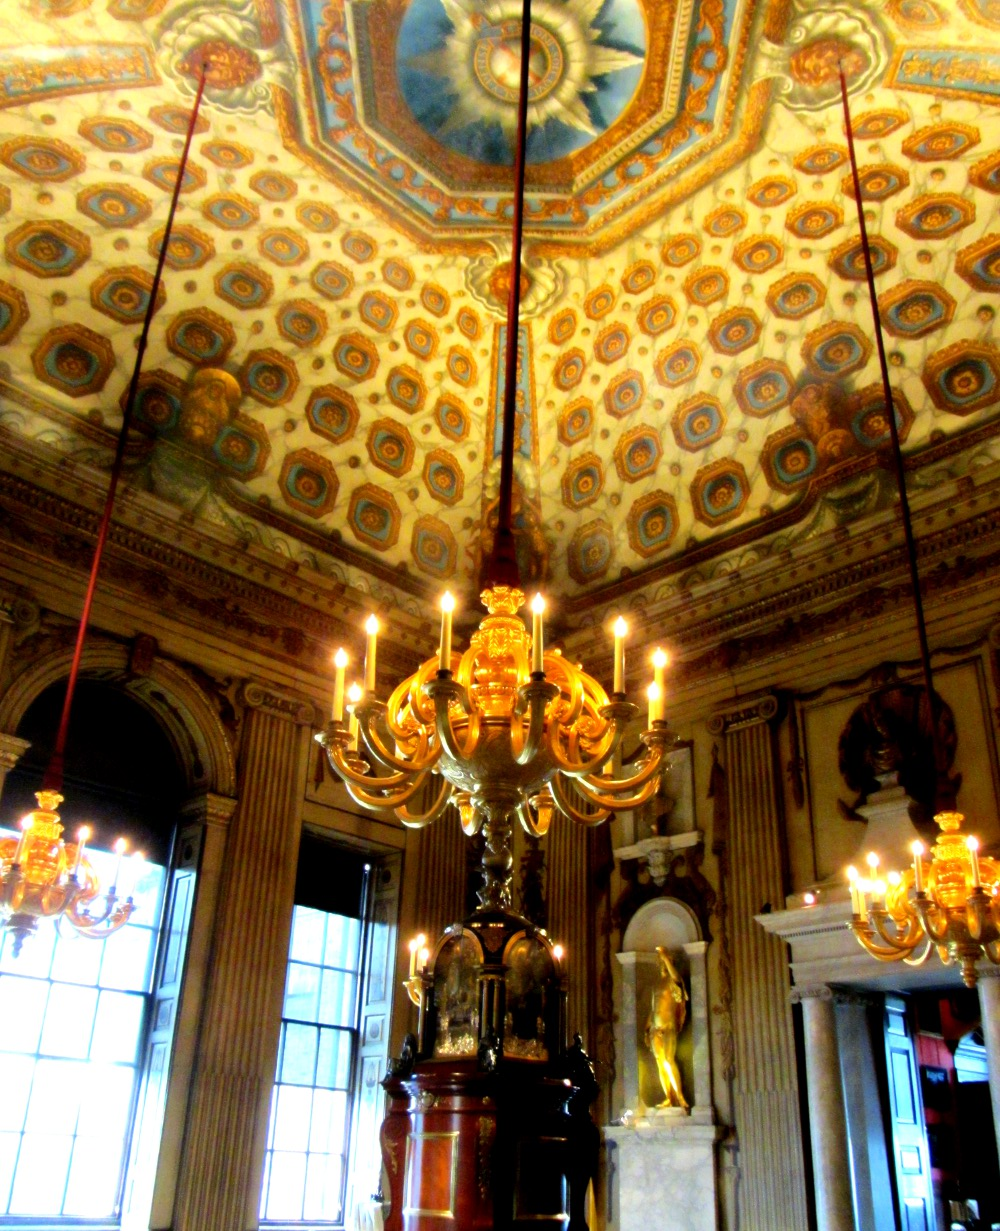 chandeliers of Kensington Palace Double Barrelled Travel